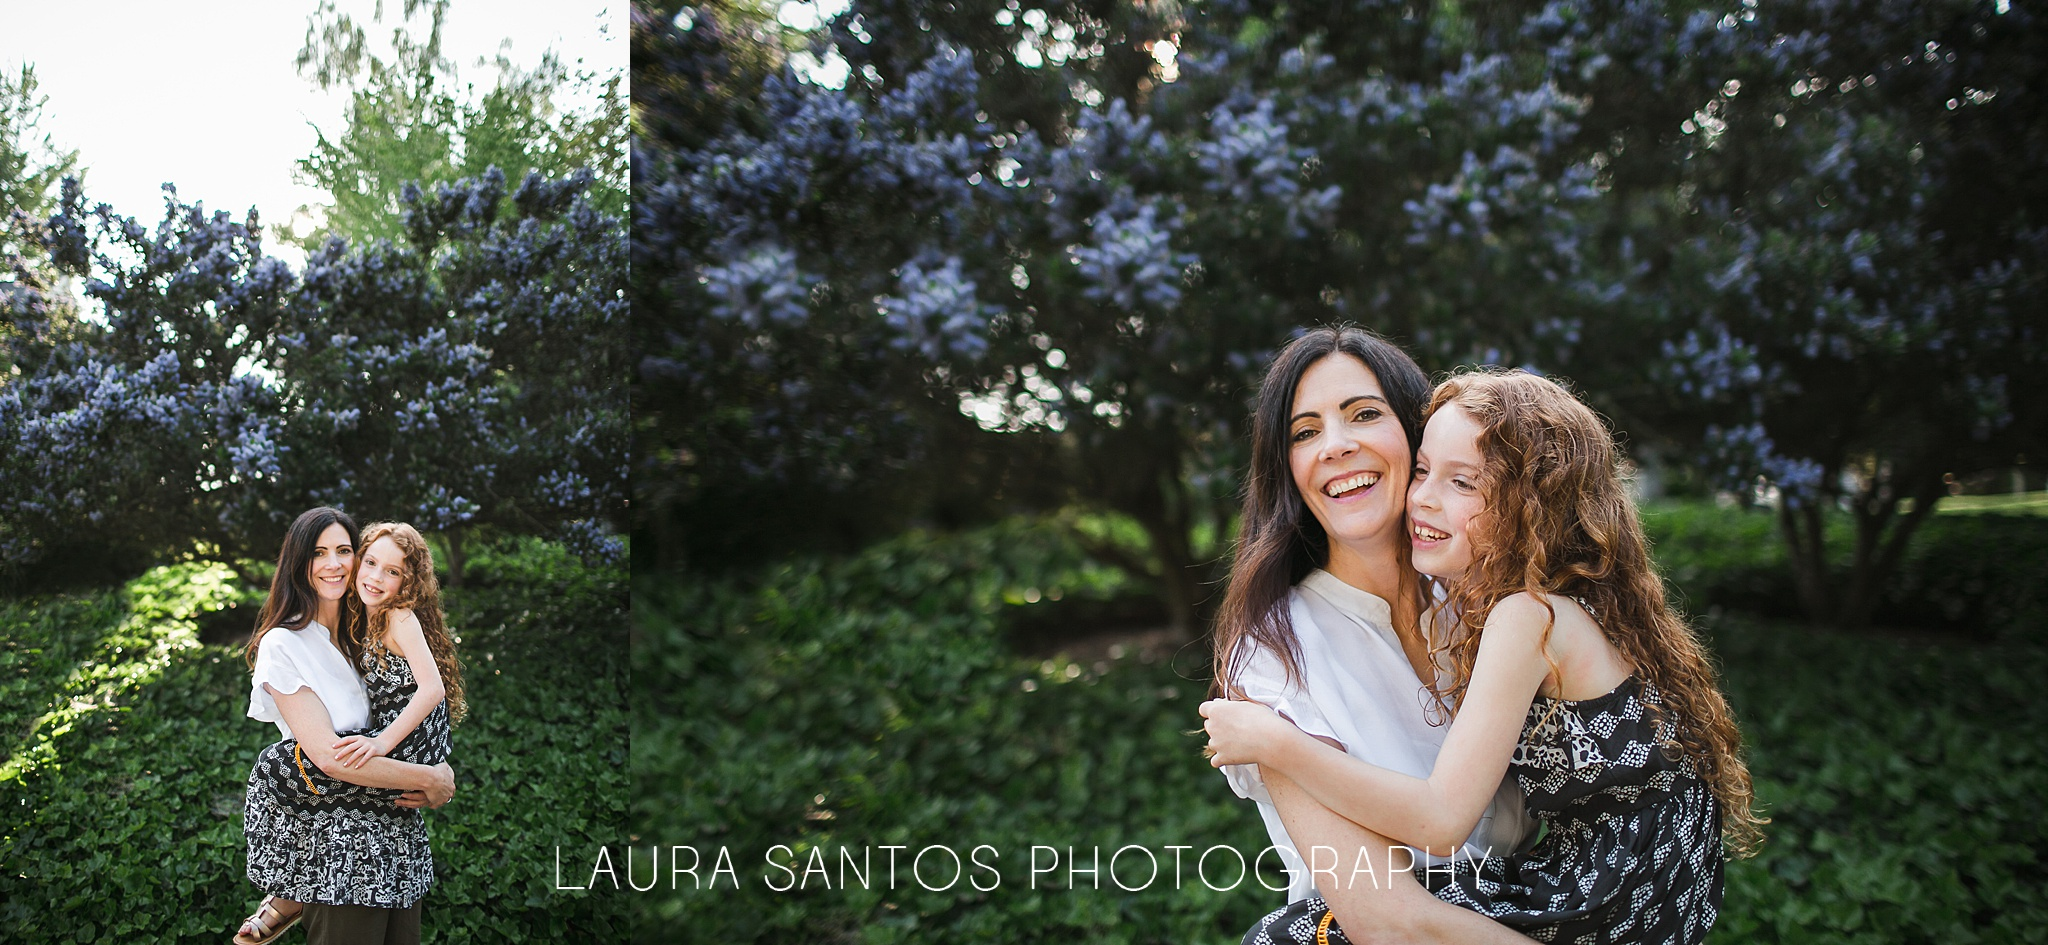 Laura Santos Photography Portland Oregon Family Photographer_0956.jpg